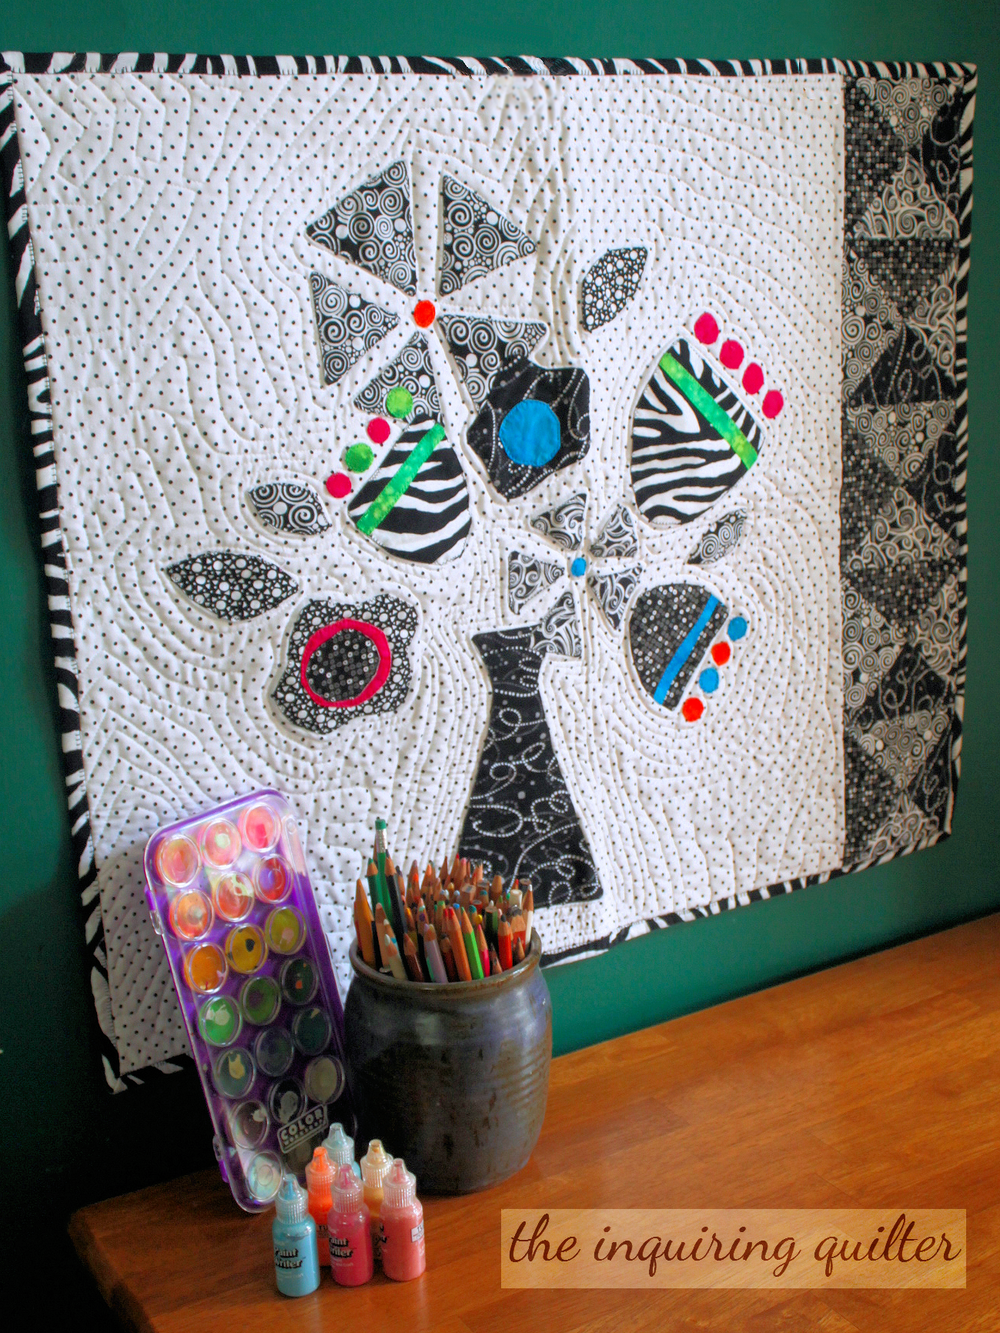 Funky Flowers (c) 2014-2015 Jennifer Fulton, The Inquiring Quilter